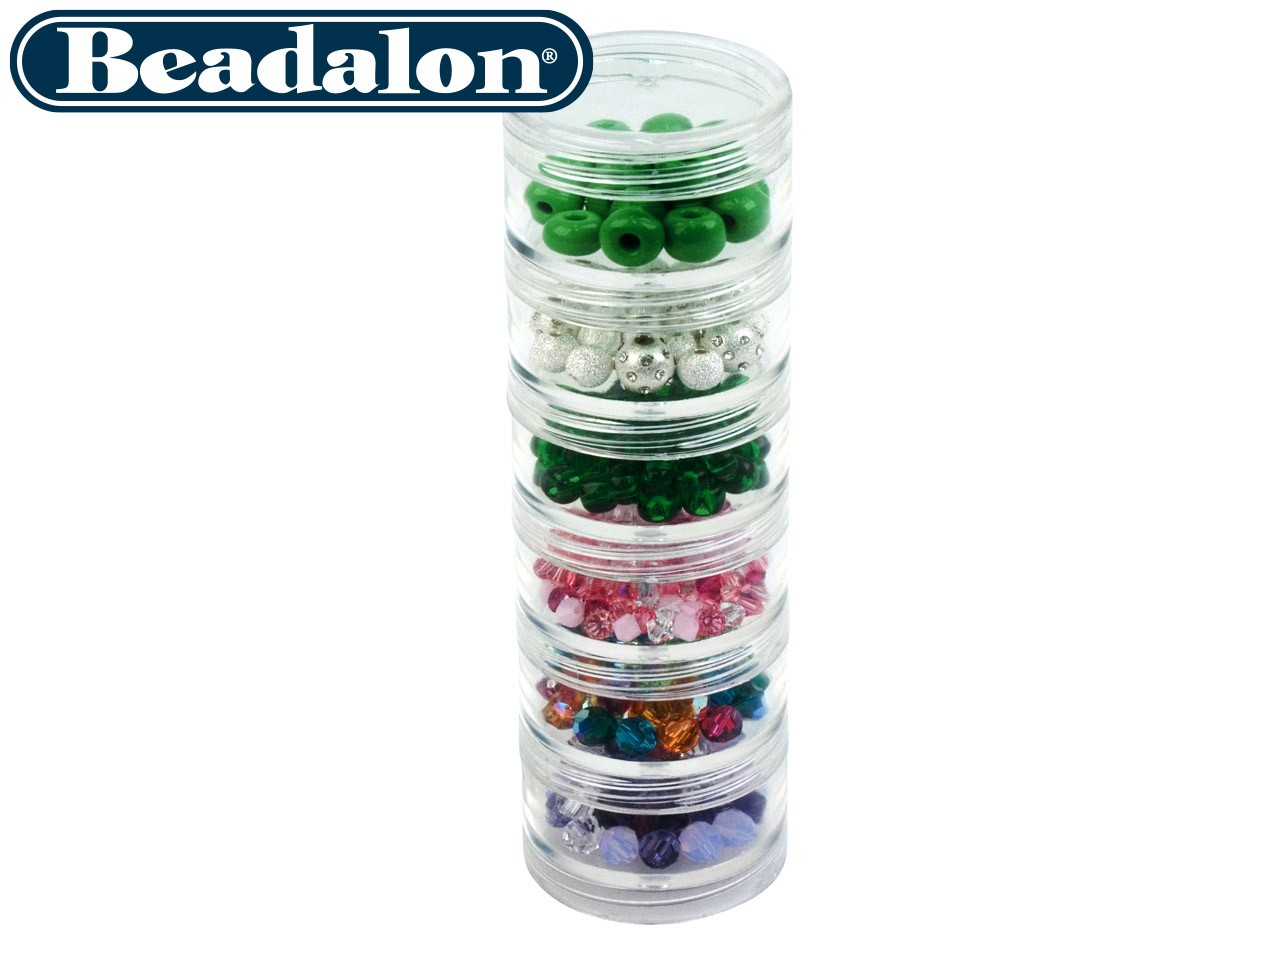 Beadalon Medium and Large Bead Storage Stackable Containers  sc 1 st  Cooksongold & Jewellery Making Storage Ideas | Cooksongold | The Bench